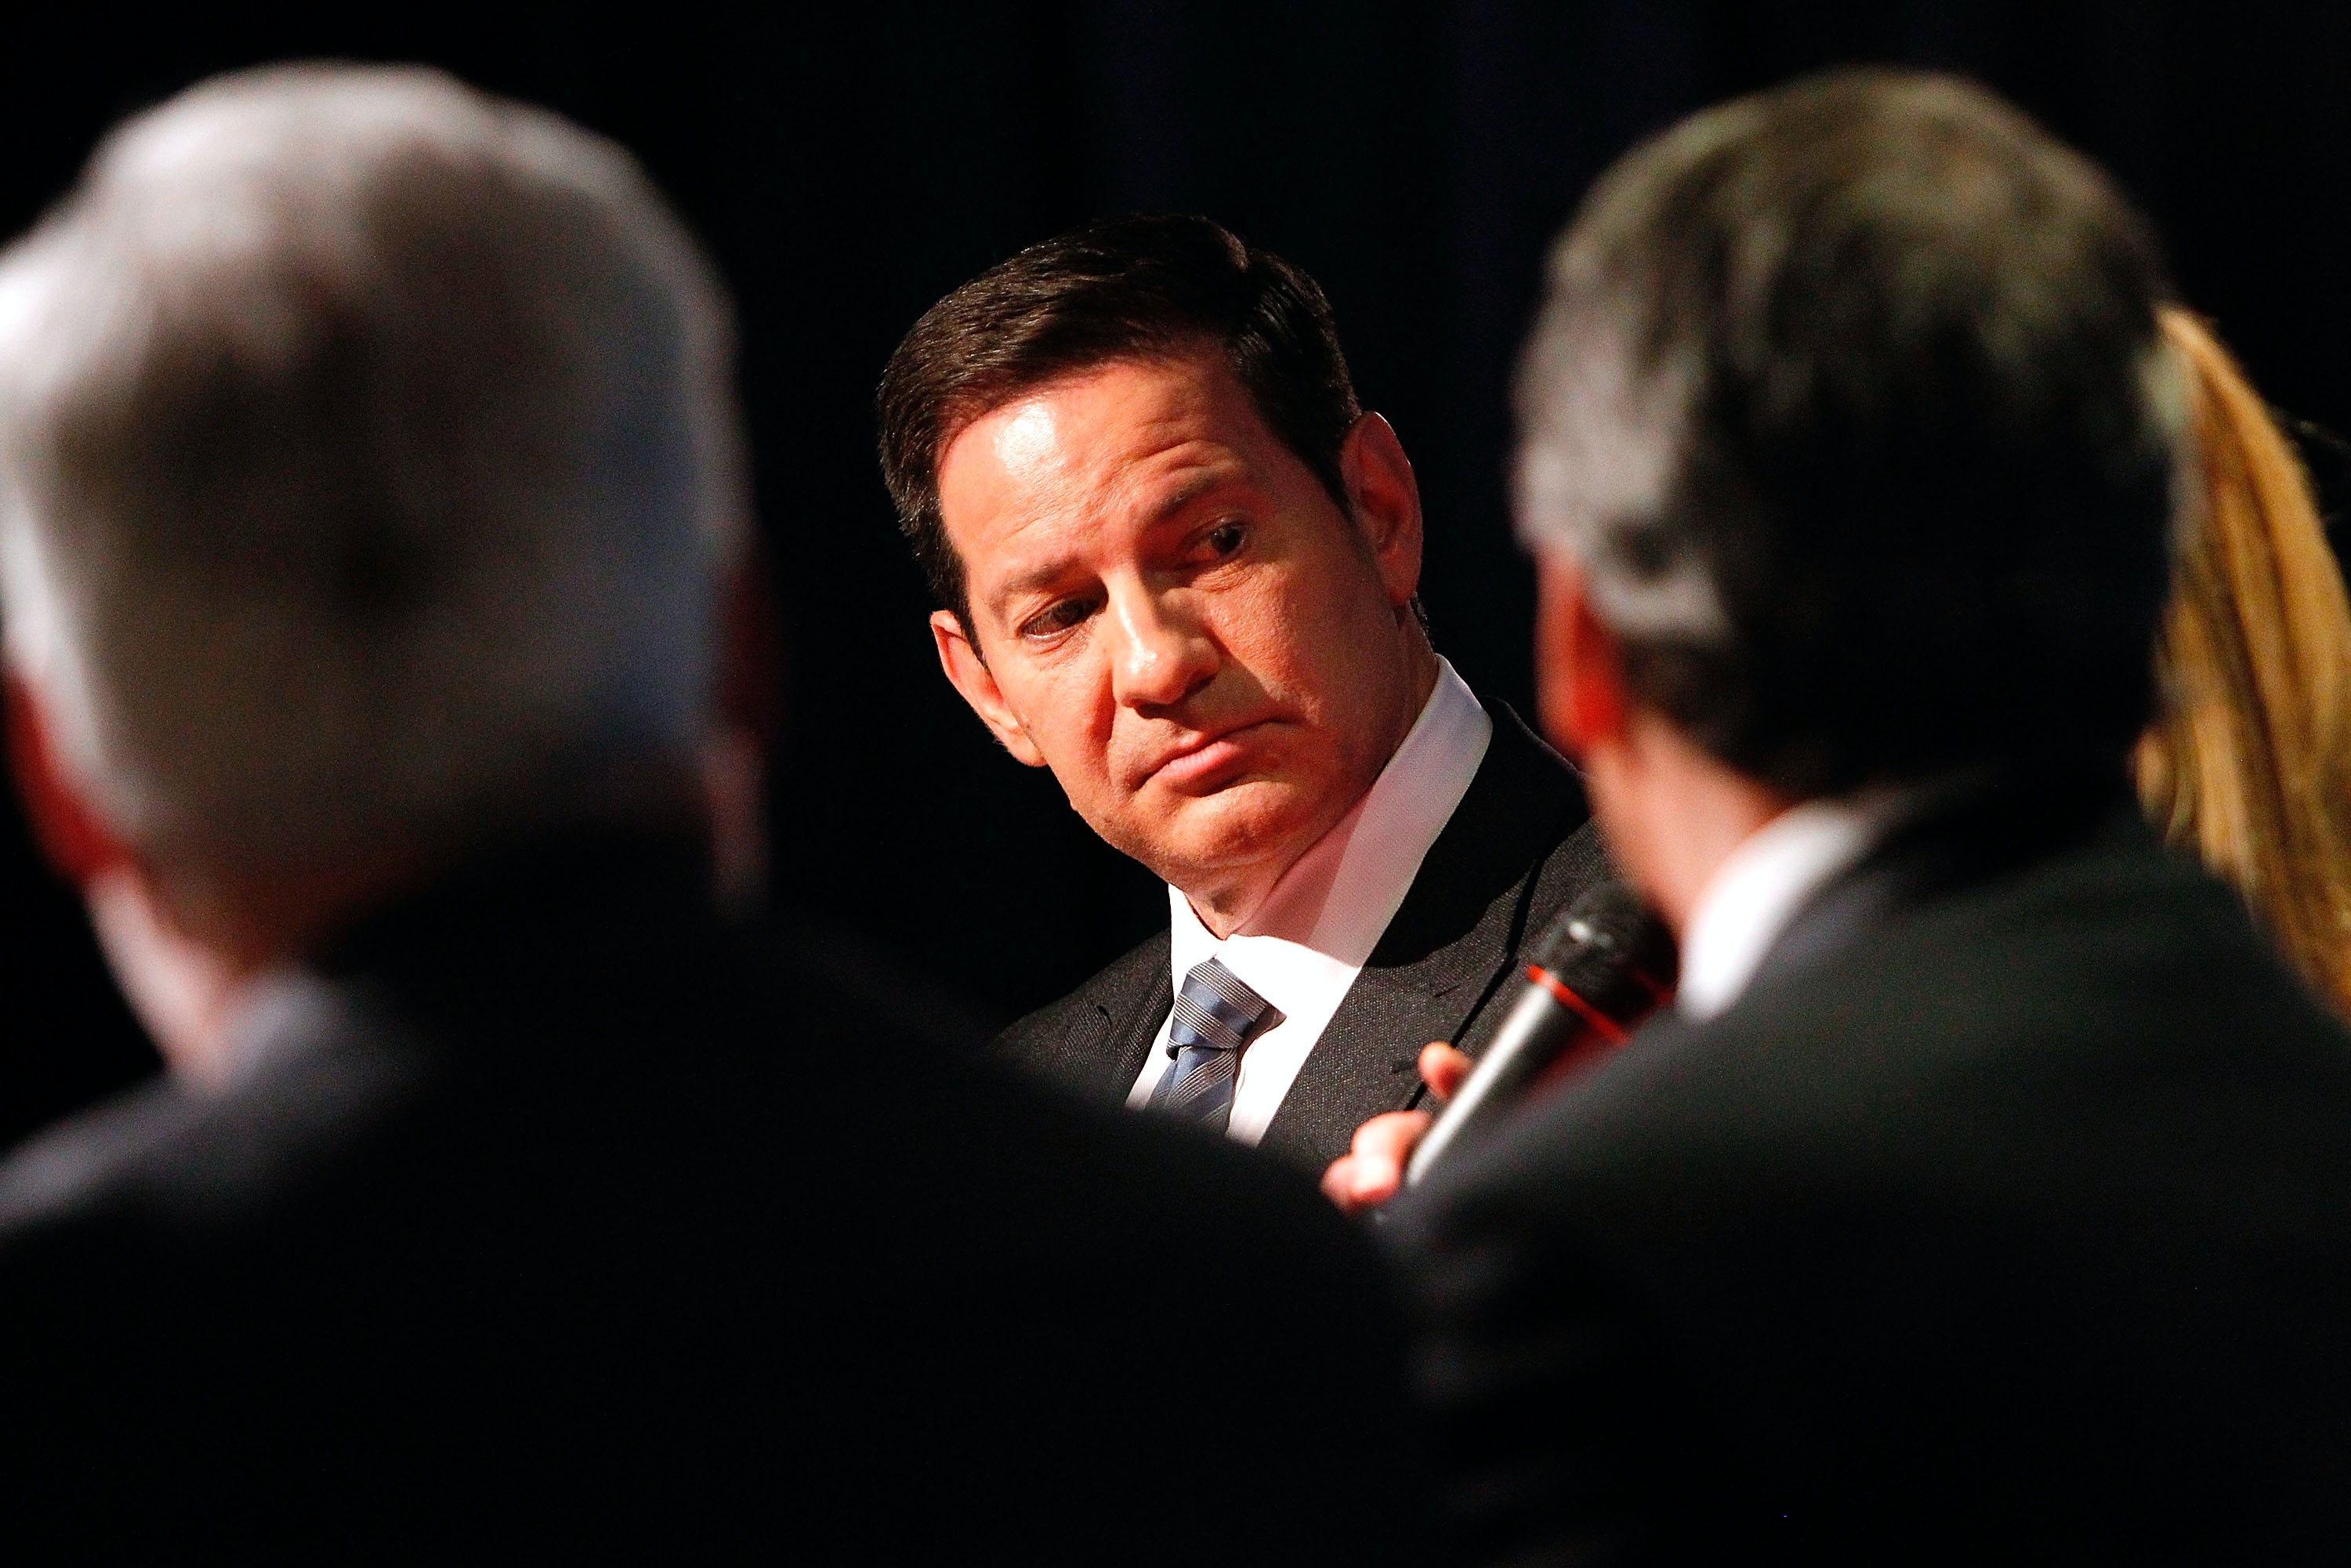 Mark Halperin Out (For Now) as NBC News Contributor After Harassment Claims